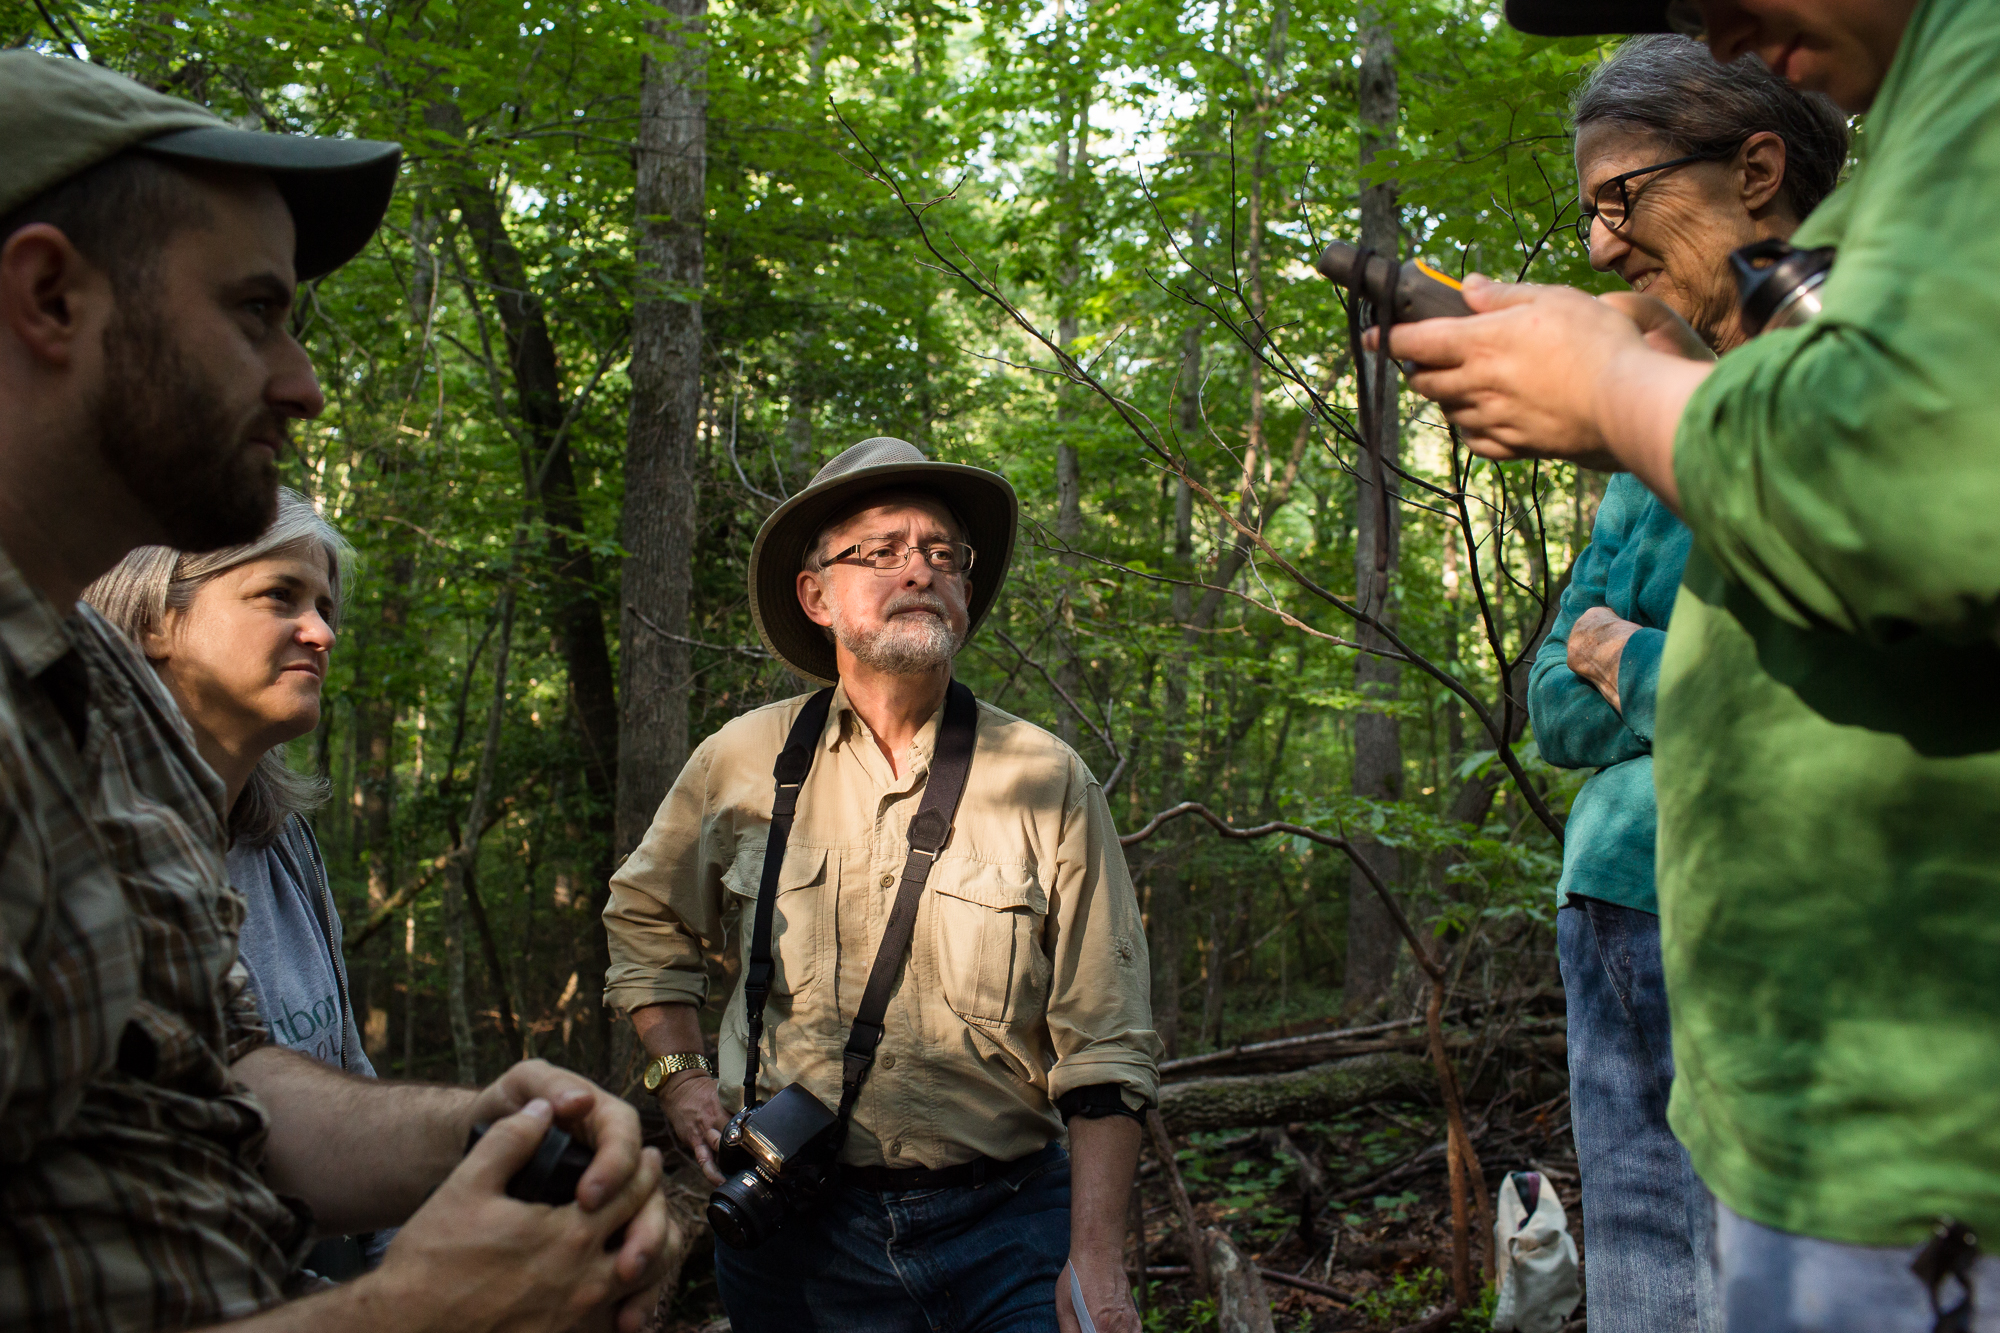 FROM LEFT: Tim Guida of the Smithsonian Migratory Bird Center, Kim Brand of the Forsyth Audubon Society and volunteers David Shuford, Jean Chamberlain and Kim Thorington during a break from capturing Wood Thrushes at Pilot Mountain in Pinnacle, N.C.